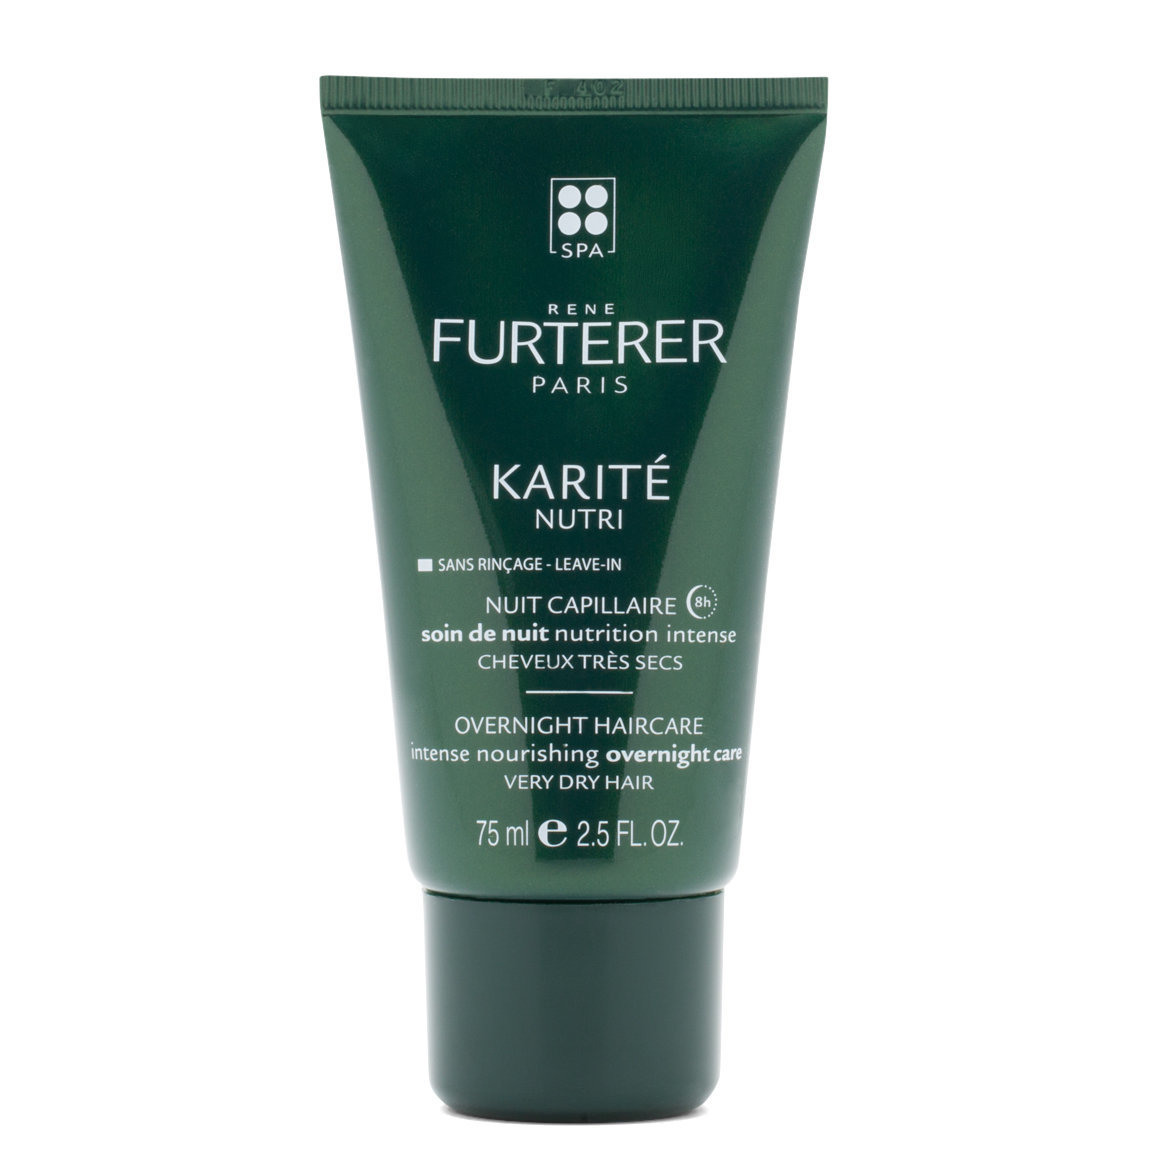 Rene Furterer Karite Nutri Intense Nourishing Overnight Treatment product swatch.